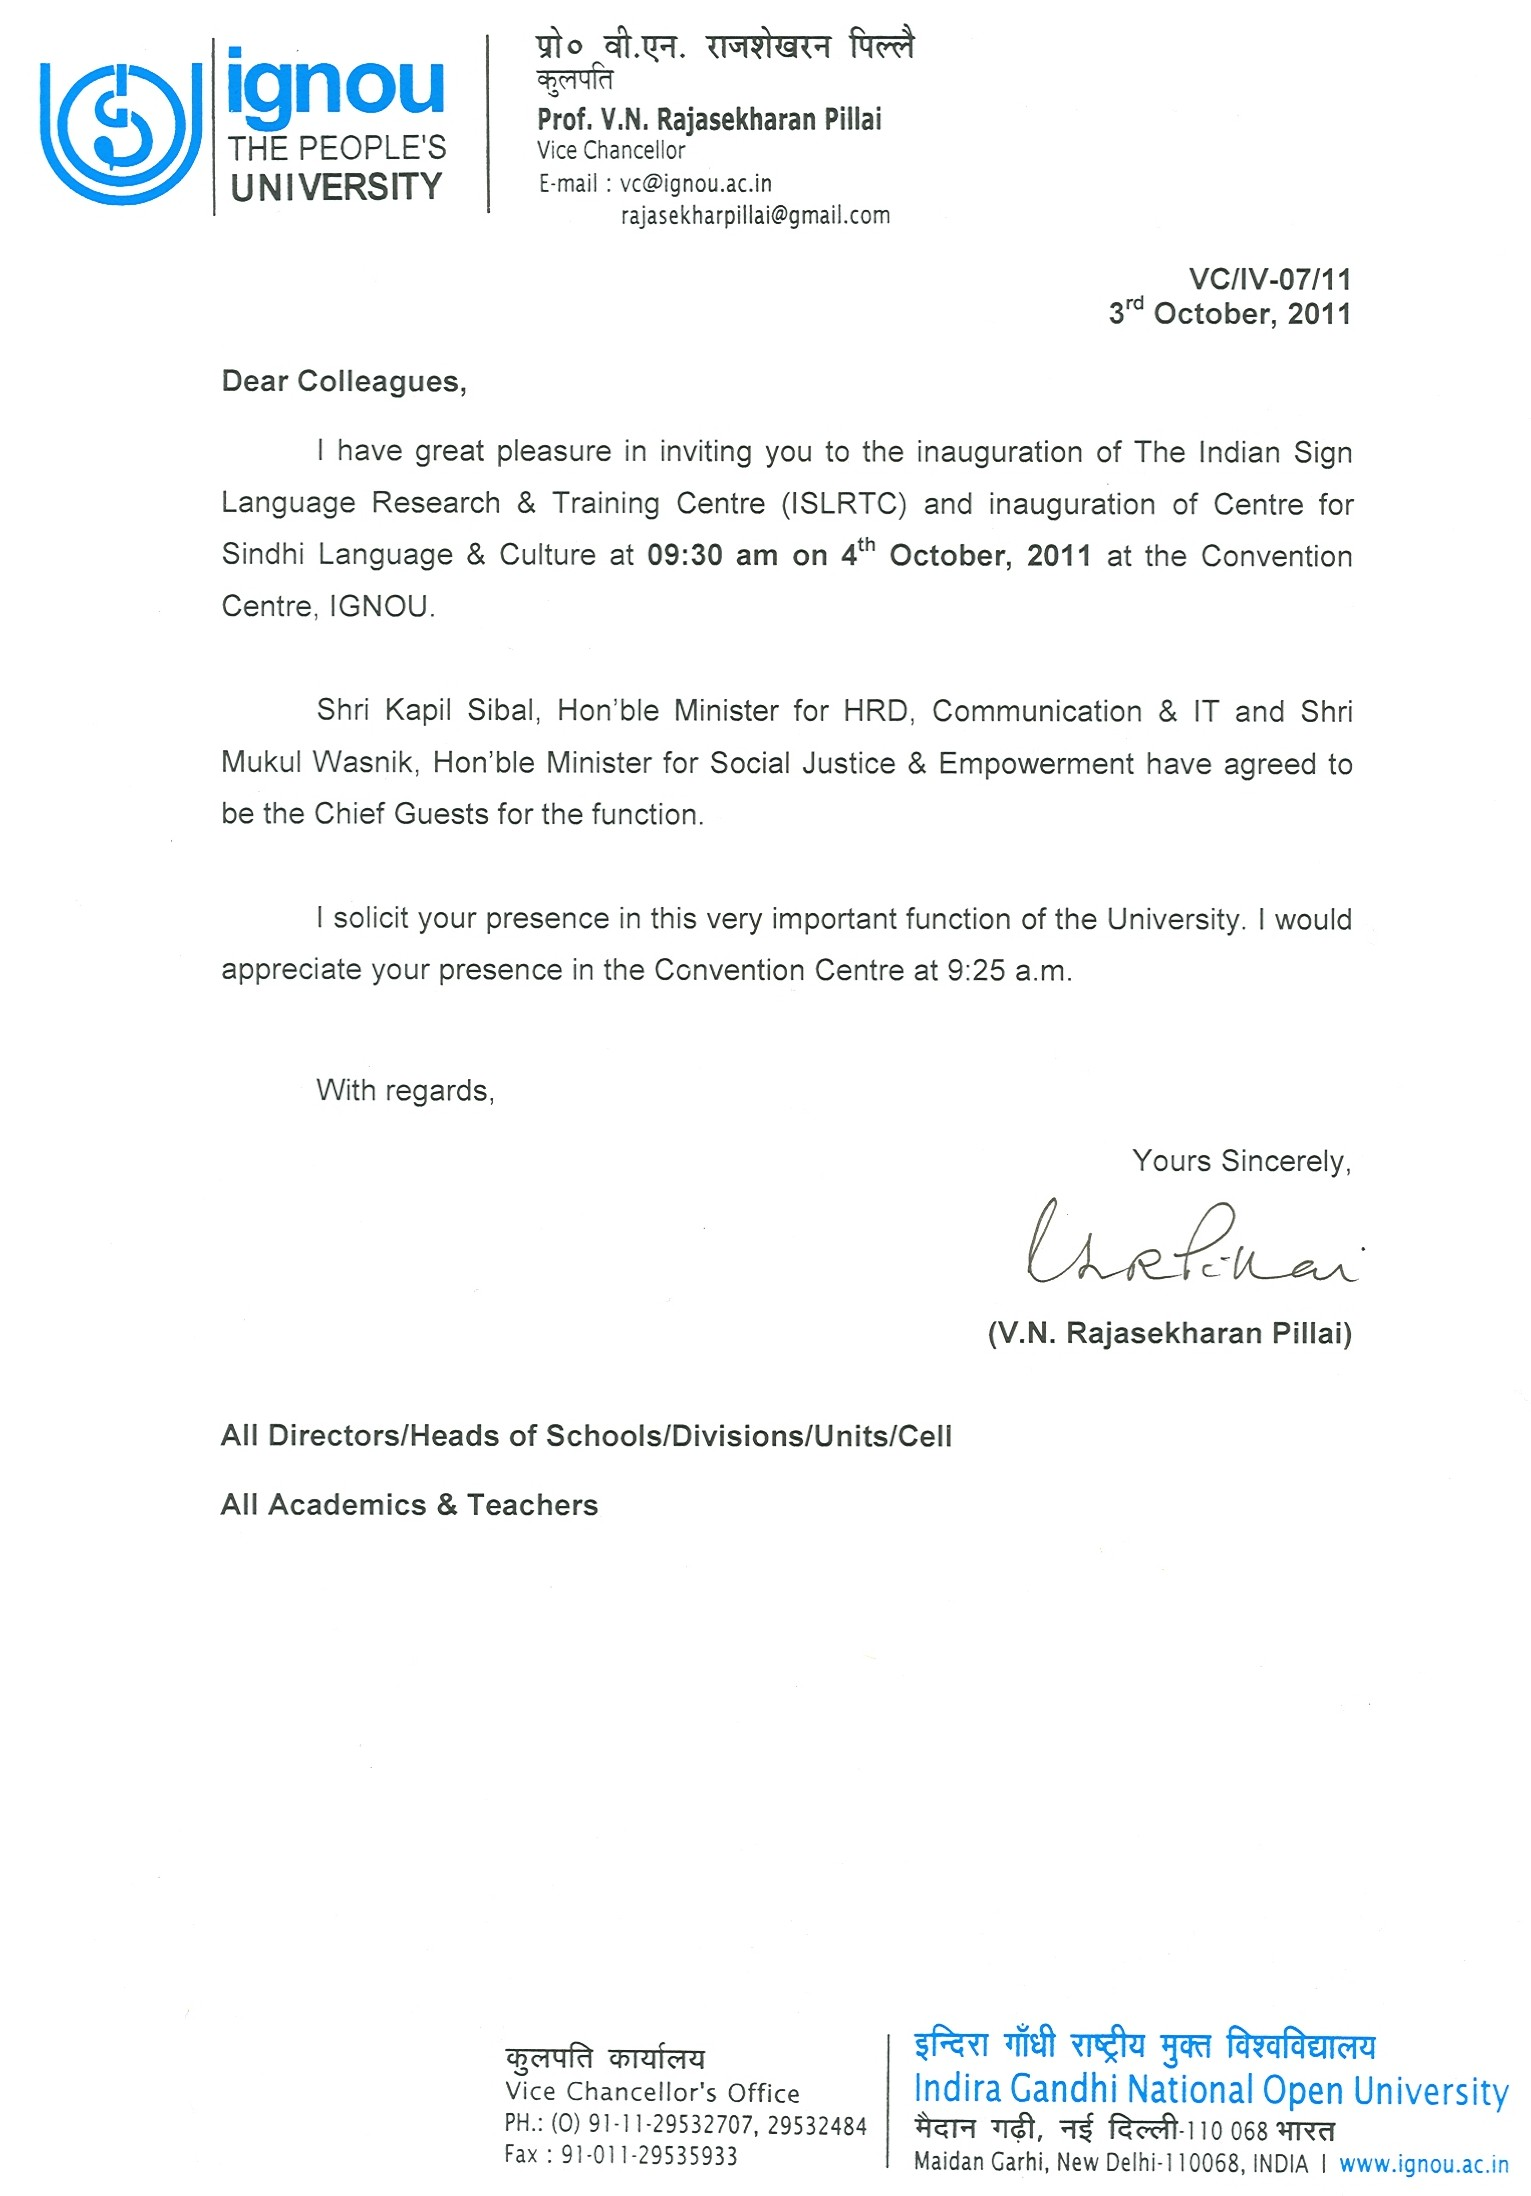 IGNOU - Announcements - Latest - Invitation cards for Inauguration of 'Centre for Sindhi ...